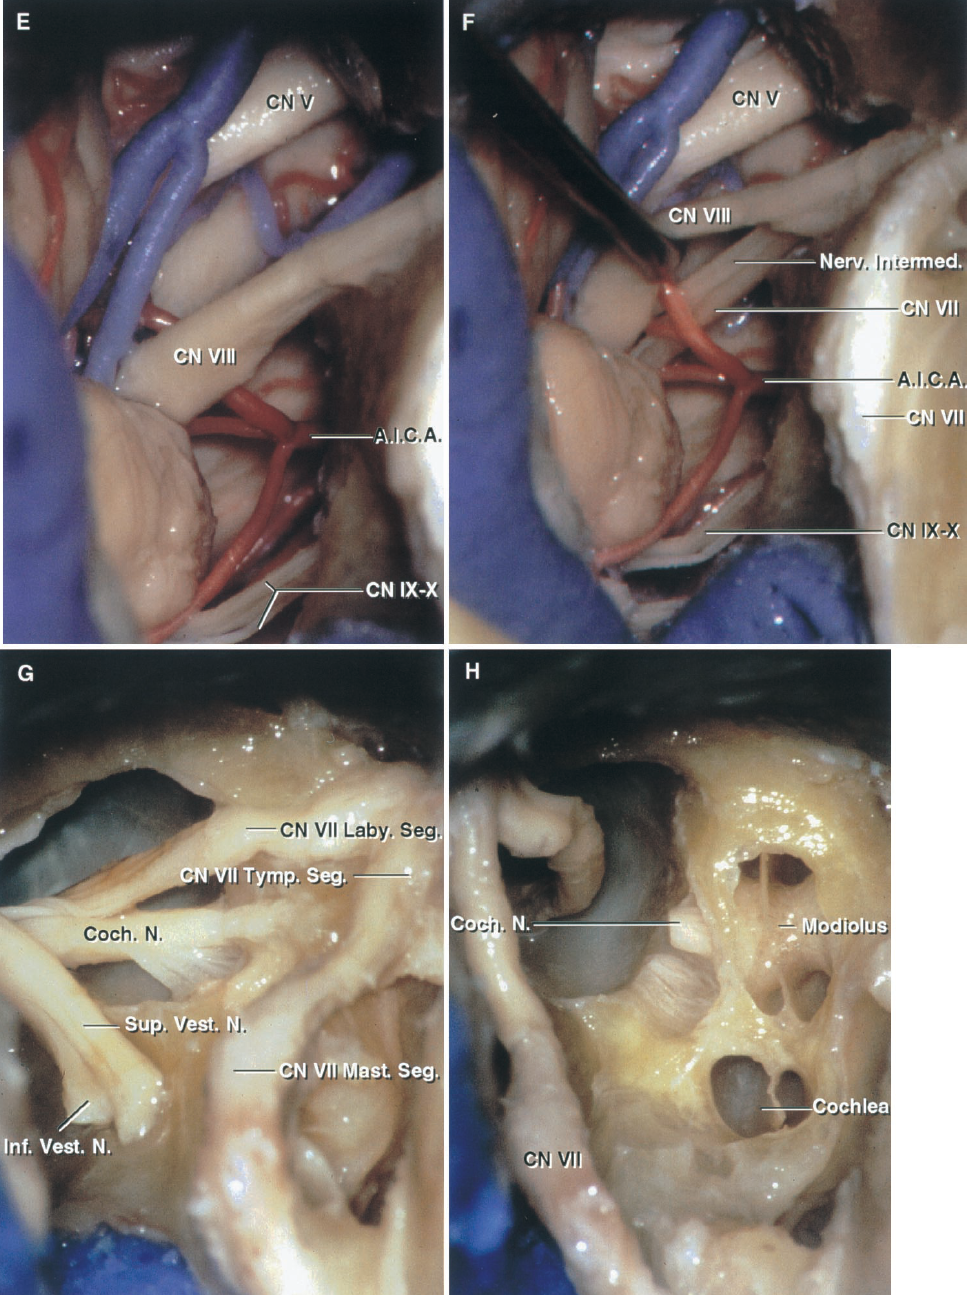 FIGURE 8.6. E–H. Translabyrinthine exposure. E, enlarged view of the exposure in the cerebellopontine angle. In this case, the glossopharyngeal and vagus nerves can be seen, although, in the translabyrinthine exposure, the jugular bulb often obstructs the view of the nerves entering the jugular foramen. F, the vestibulocochlear nerve has been elevated to expose the facial nerve. G, the labyrinthine, tympanic, and mastoid segments of the facial nerve have been exposed in preparation for transposition of the nerve for a transcochlear approach. H, the facial nerve has been transposed backward and the bone anterior to the meatal fundus has been removed to expose the cochlea for a transcochlear approach in which the cochlea is removed to gain access to the side of the clivus and front of the brainstem. The cochlear nerve has been divided. The cochlear fibers innervating the cochlear duct pass through the modiolus.